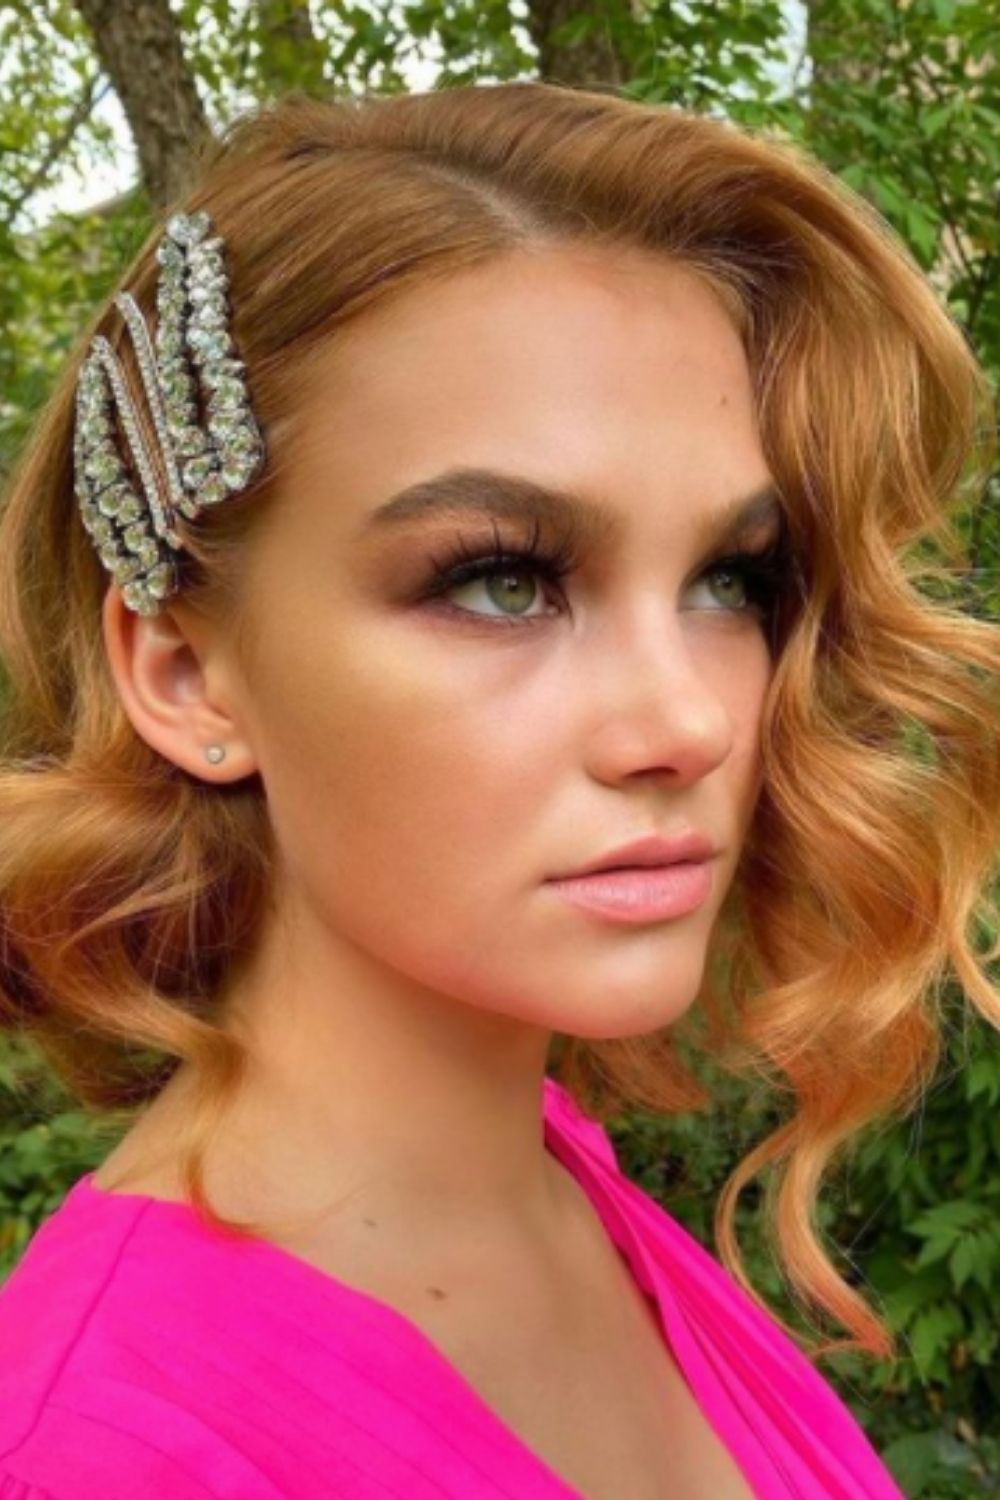 How to get short weeding hairs